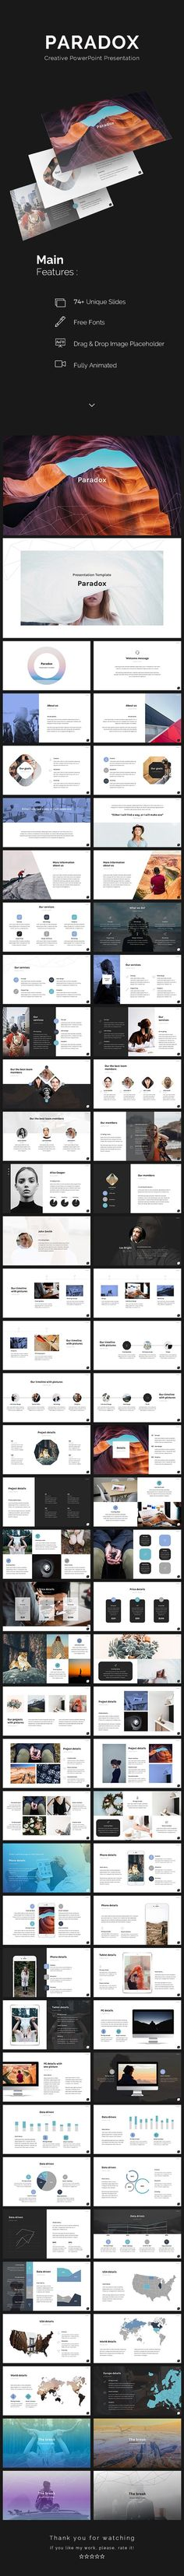 This is Creative PowerPoint Template for your multipurpose business. Paradox comes with infographic elements, charts graphs, maps and icons. Presentation Layout, Presentation Slides, Presentation Templates, Powerpoint Themes, Creative Powerpoint Templates, Powerpoint Presentations, Professional Powerpoint, Instructional Design, Graphic Design Templates